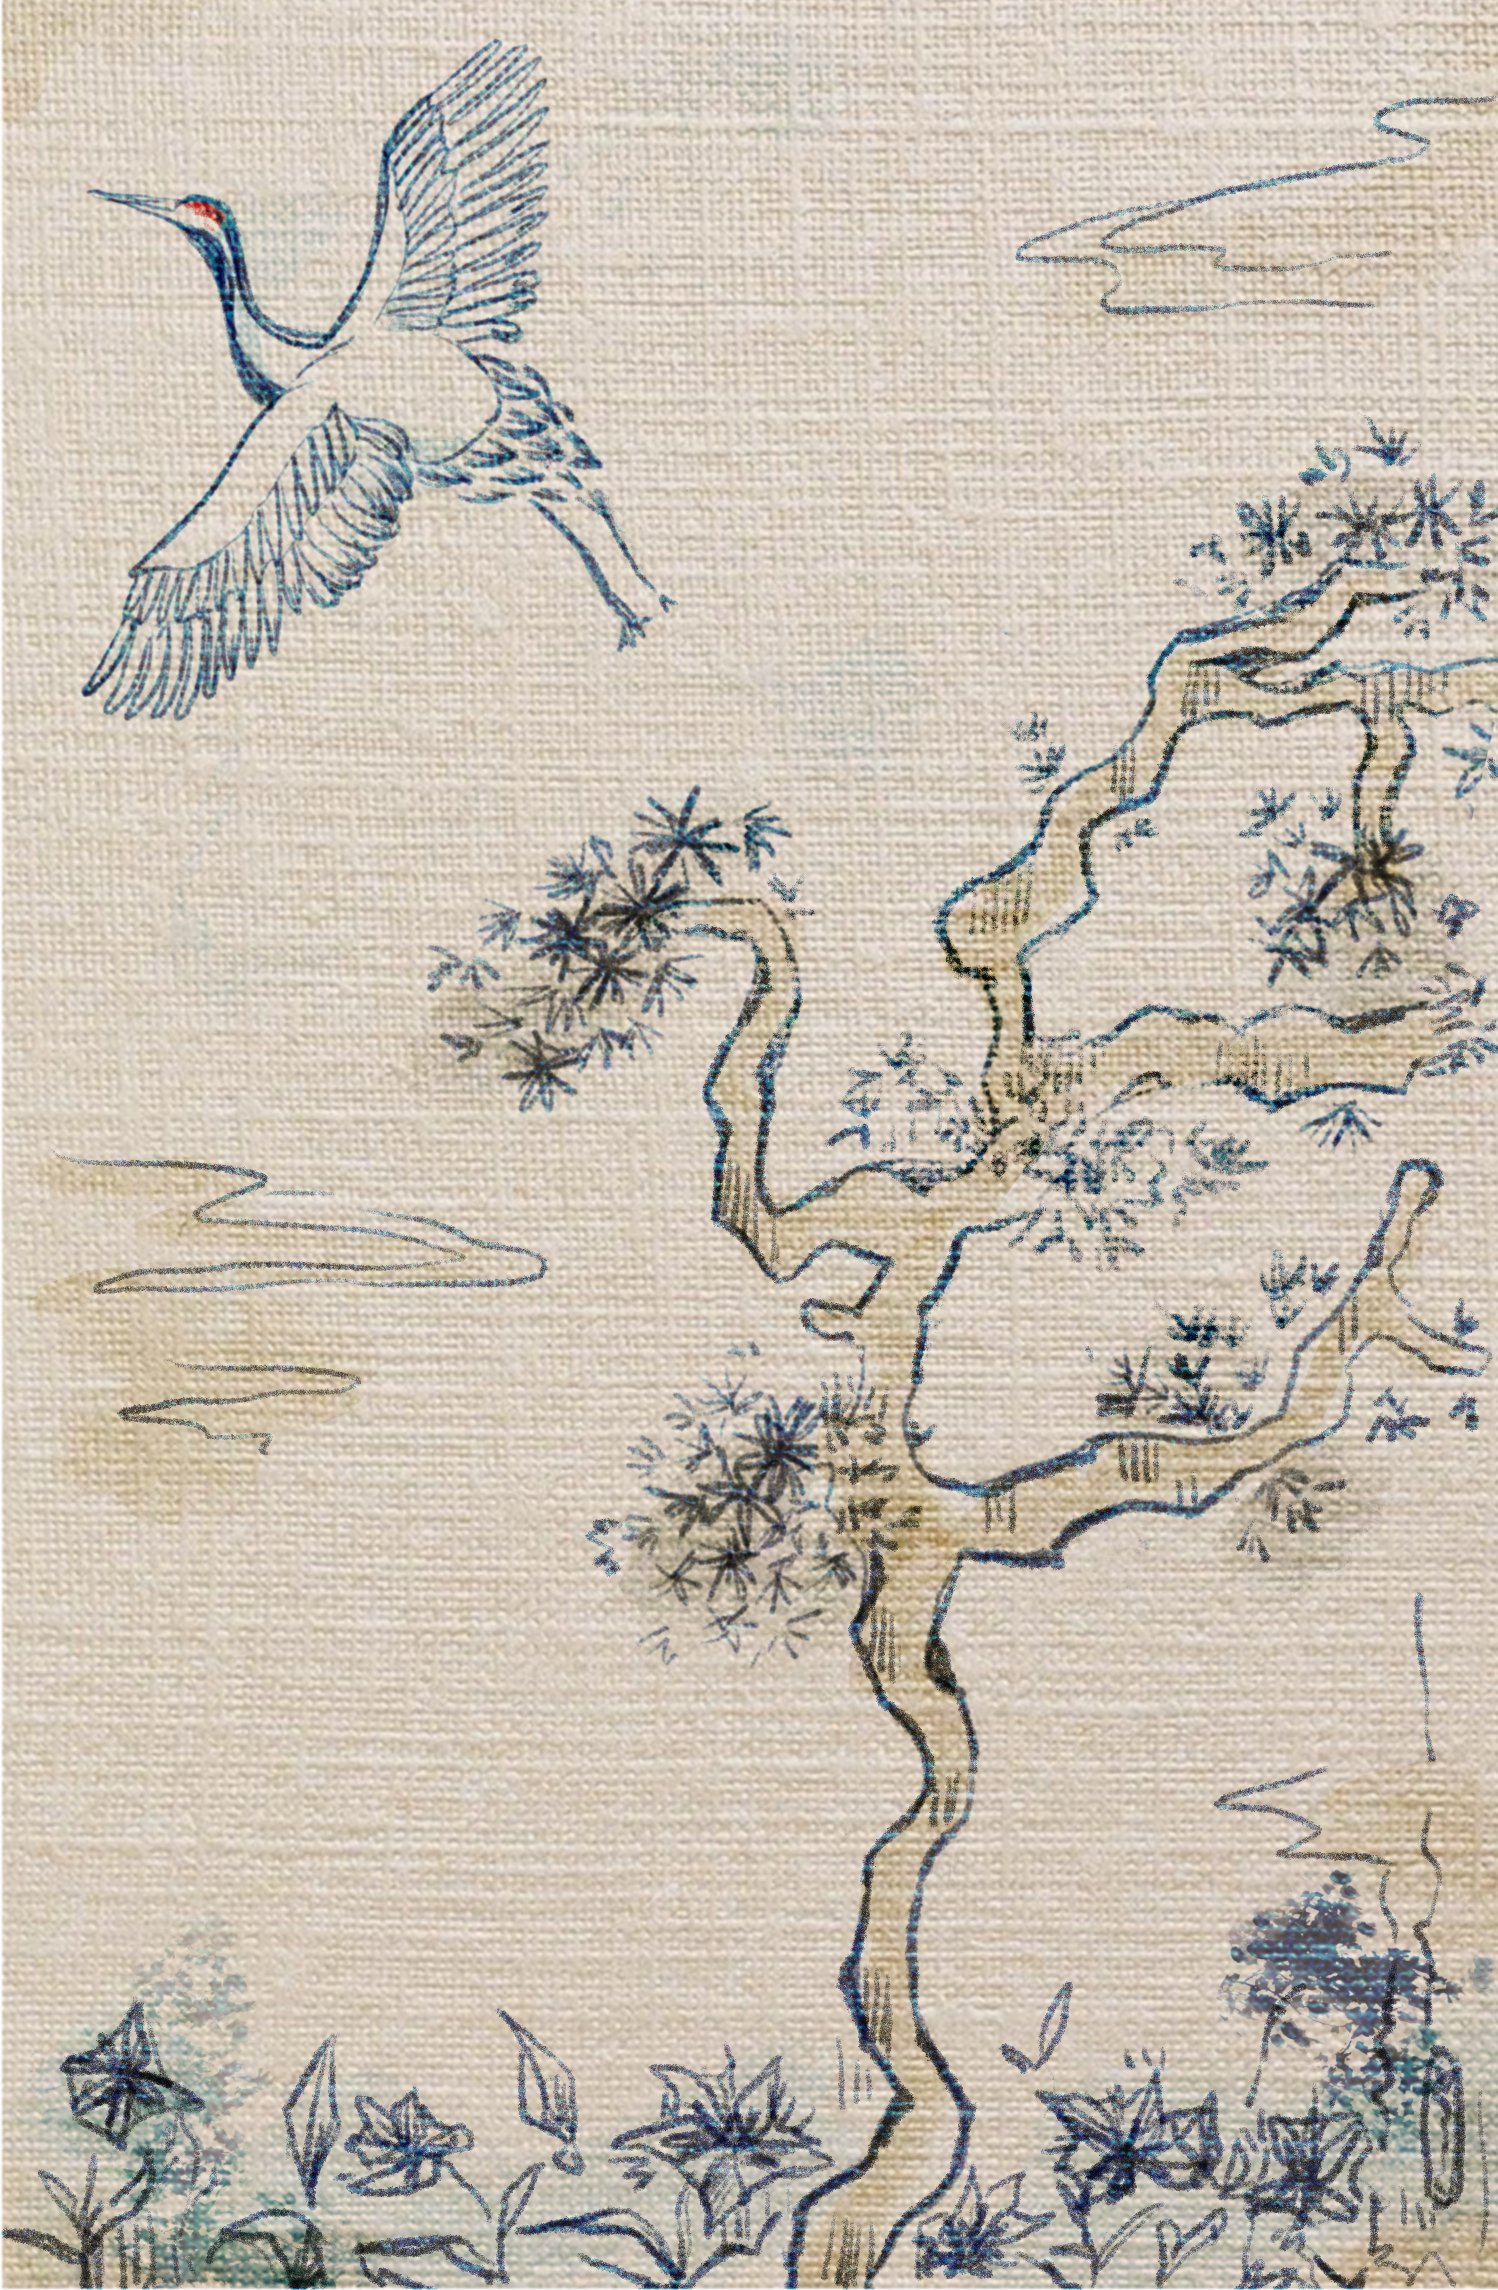 Digital art depicting an image of white crane with a red patch on its head, taking flight from stylised pine trees into a clear sky with a few stylised clouds. Below the pine trees are gentians. All of the line art is blue. An effect has been applied to make it appear as though the image is on woven fabric. Art created by twitter user gogomi.